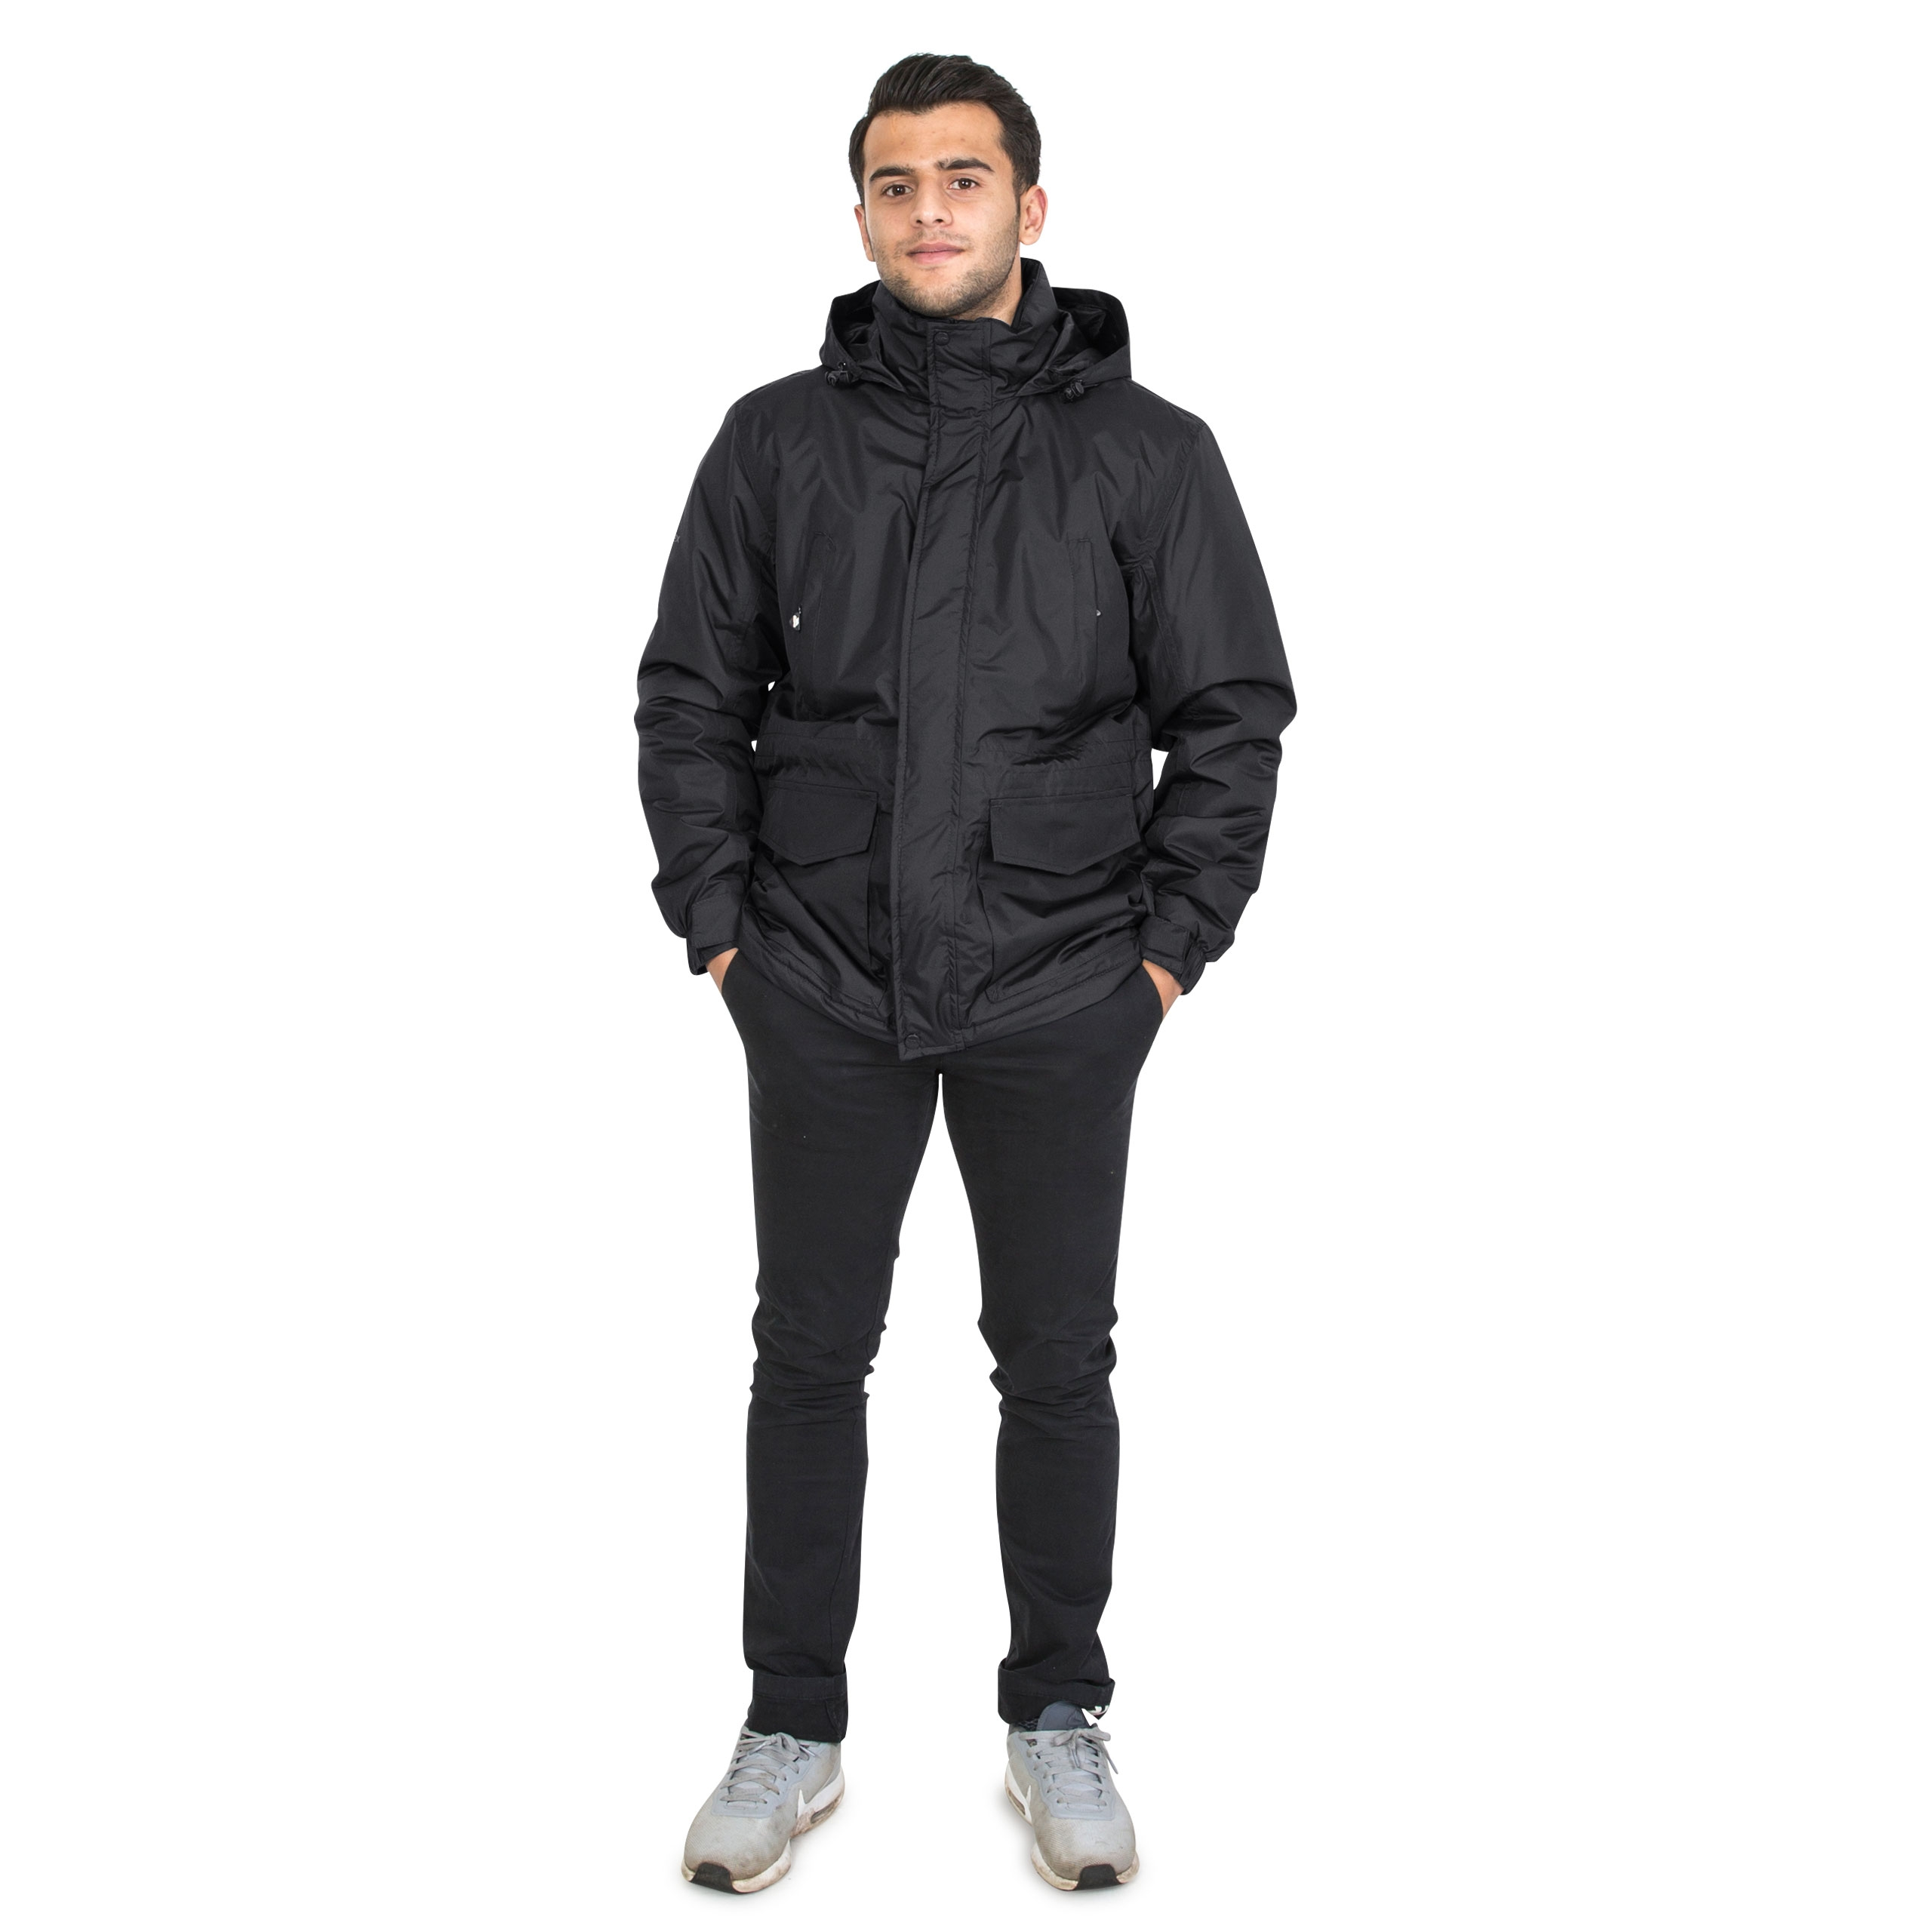 Trespass-Mens-Winter-Jacket-Padded-Waterproof-Insulated-Coat-in-Navy-Black thumbnail 12